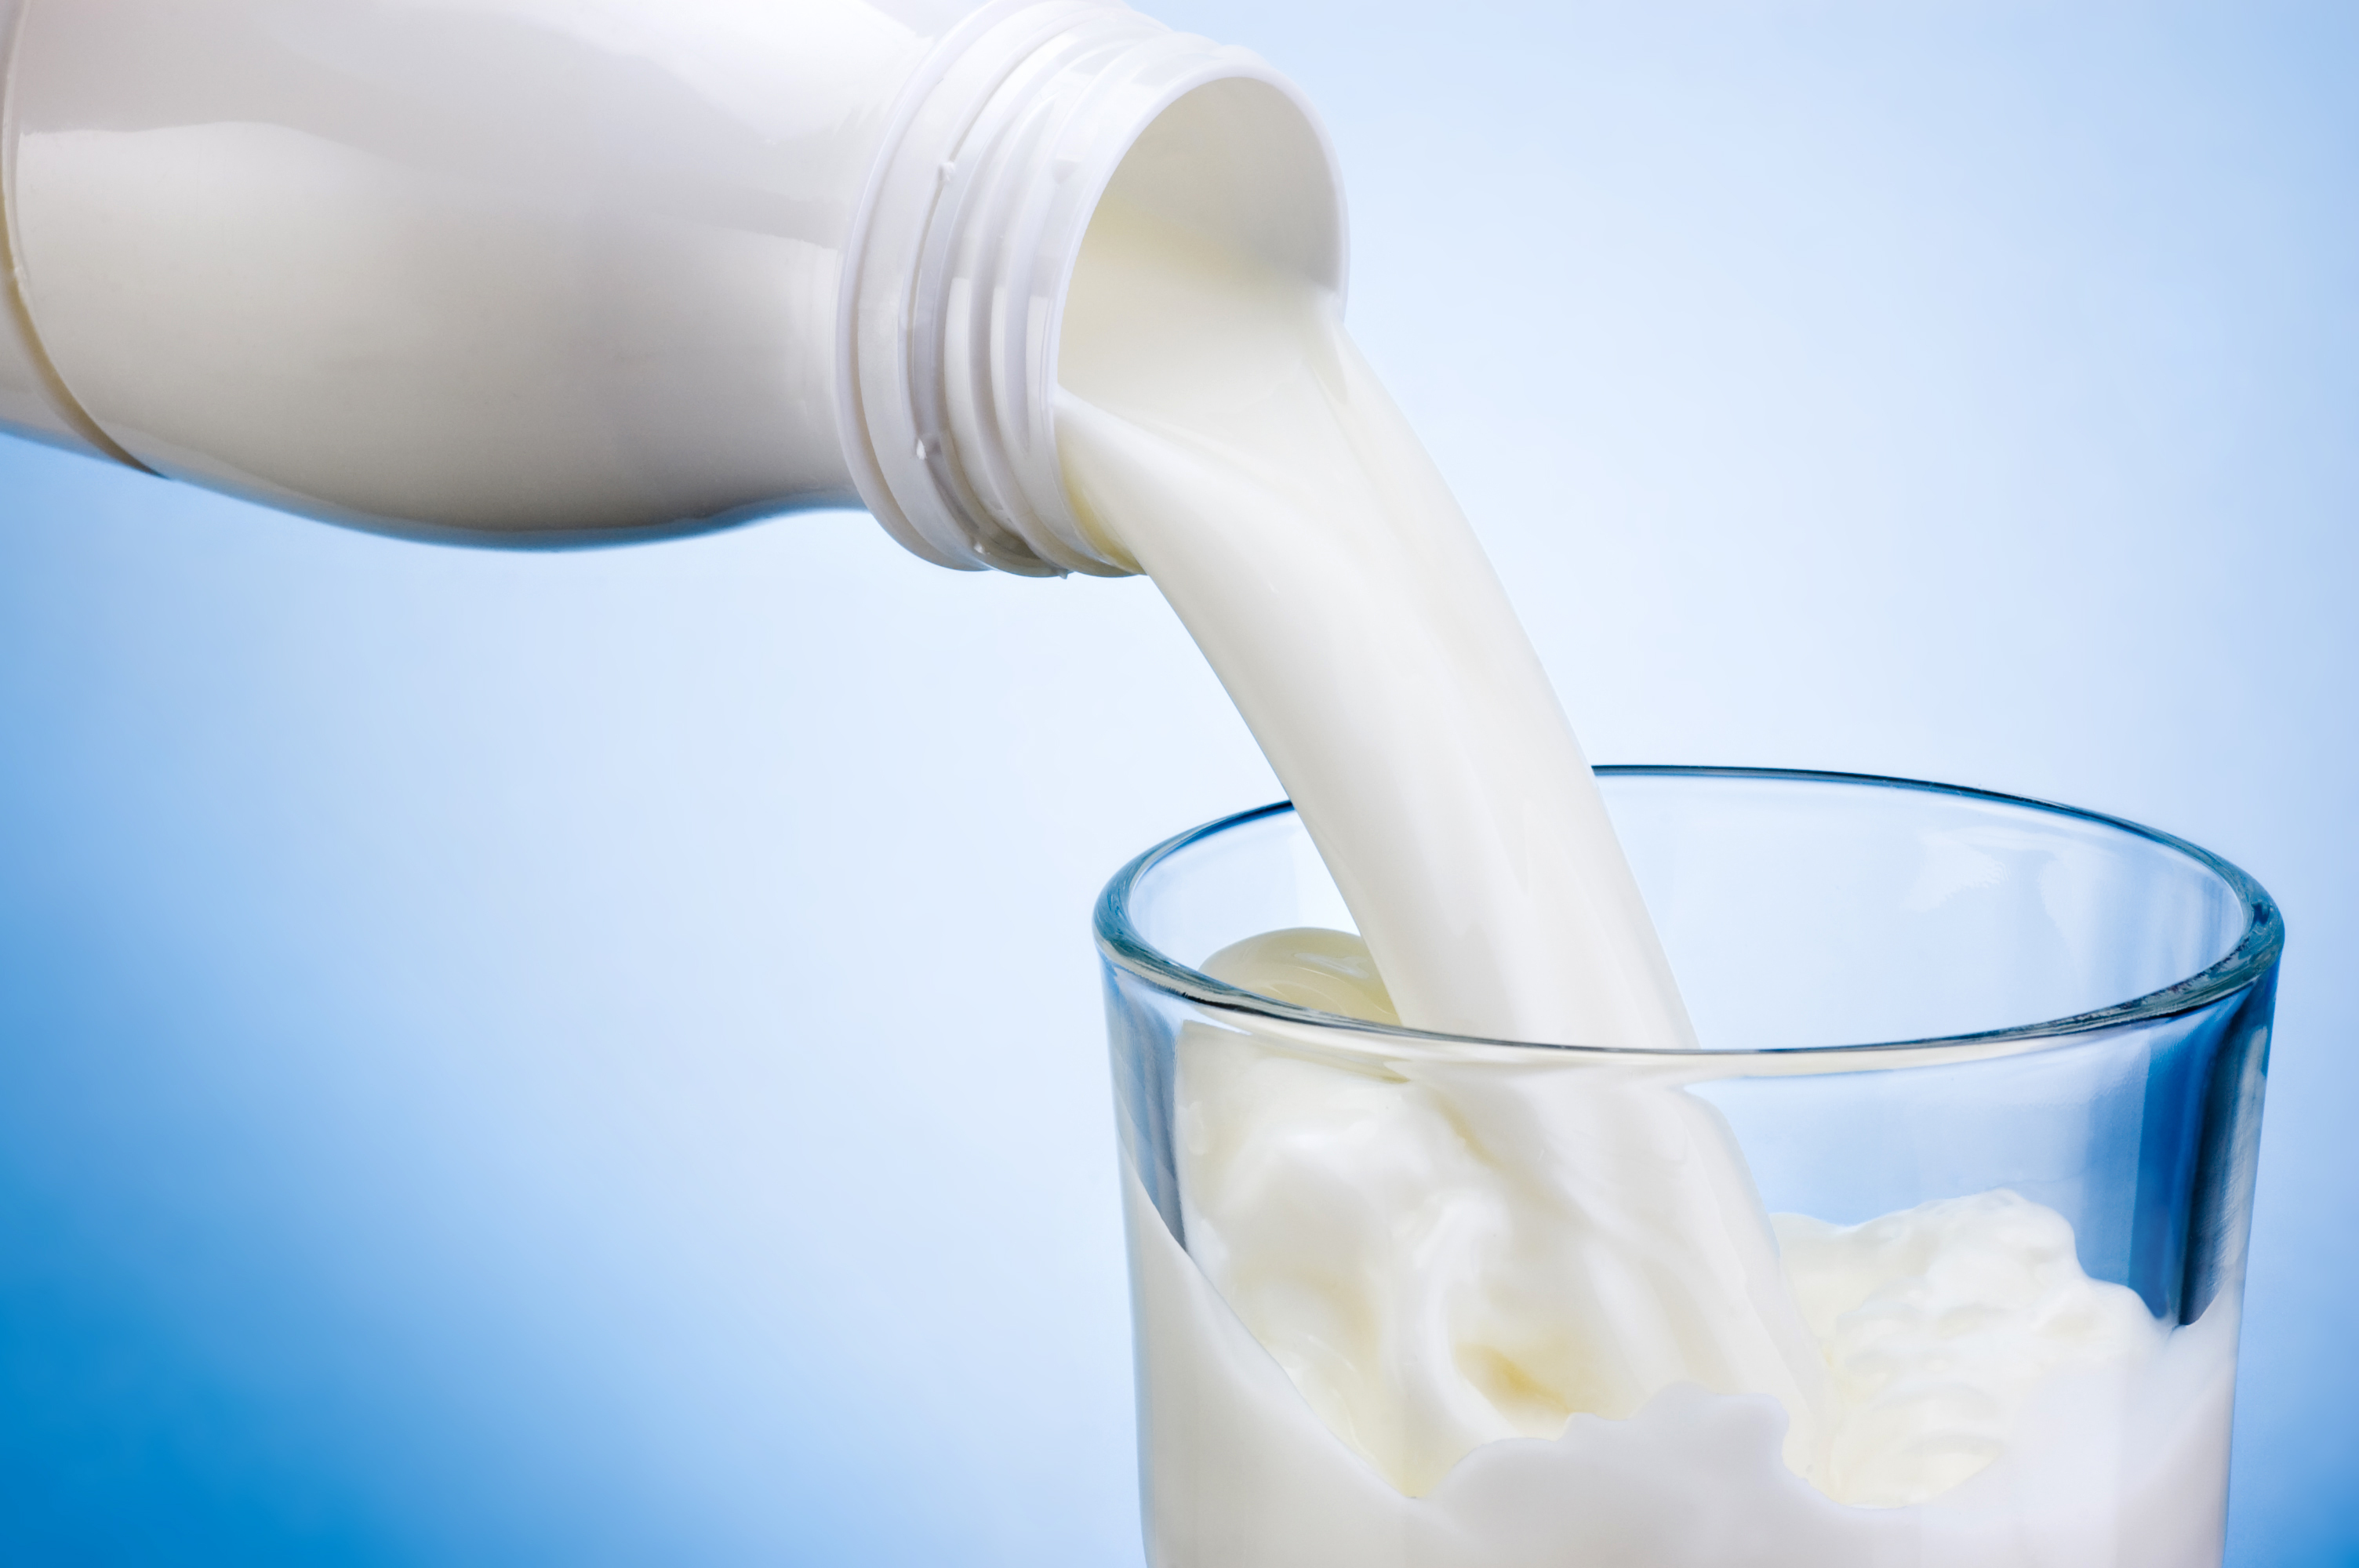 Milk pouring from a glass bottle into a glass cup.